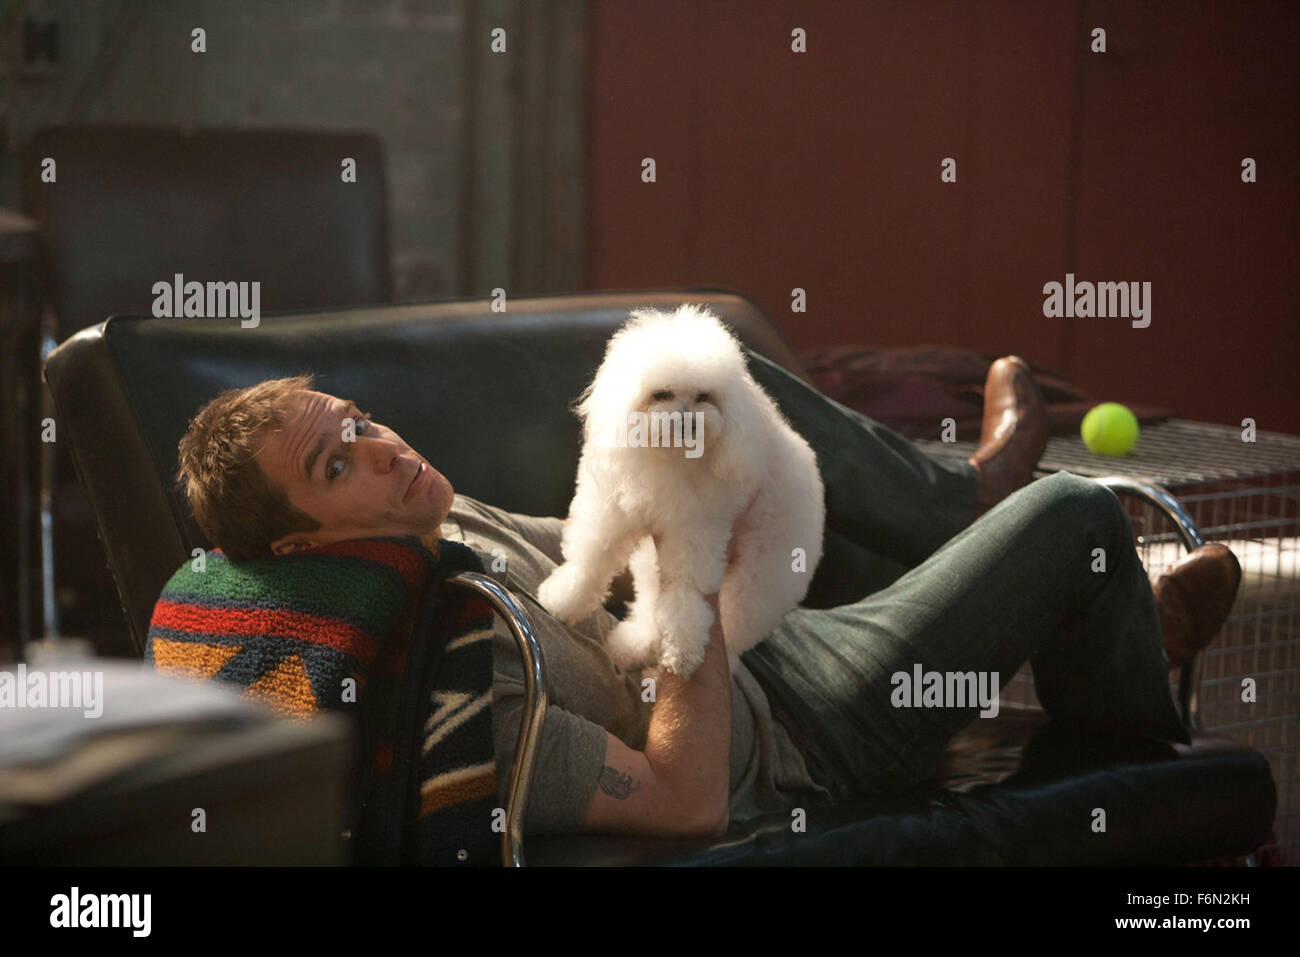 Seven psychopaths stock photos seven psychopaths stock images release date october 12 2012 title seven psychopaths studio blueprint pictures director malvernweather Images